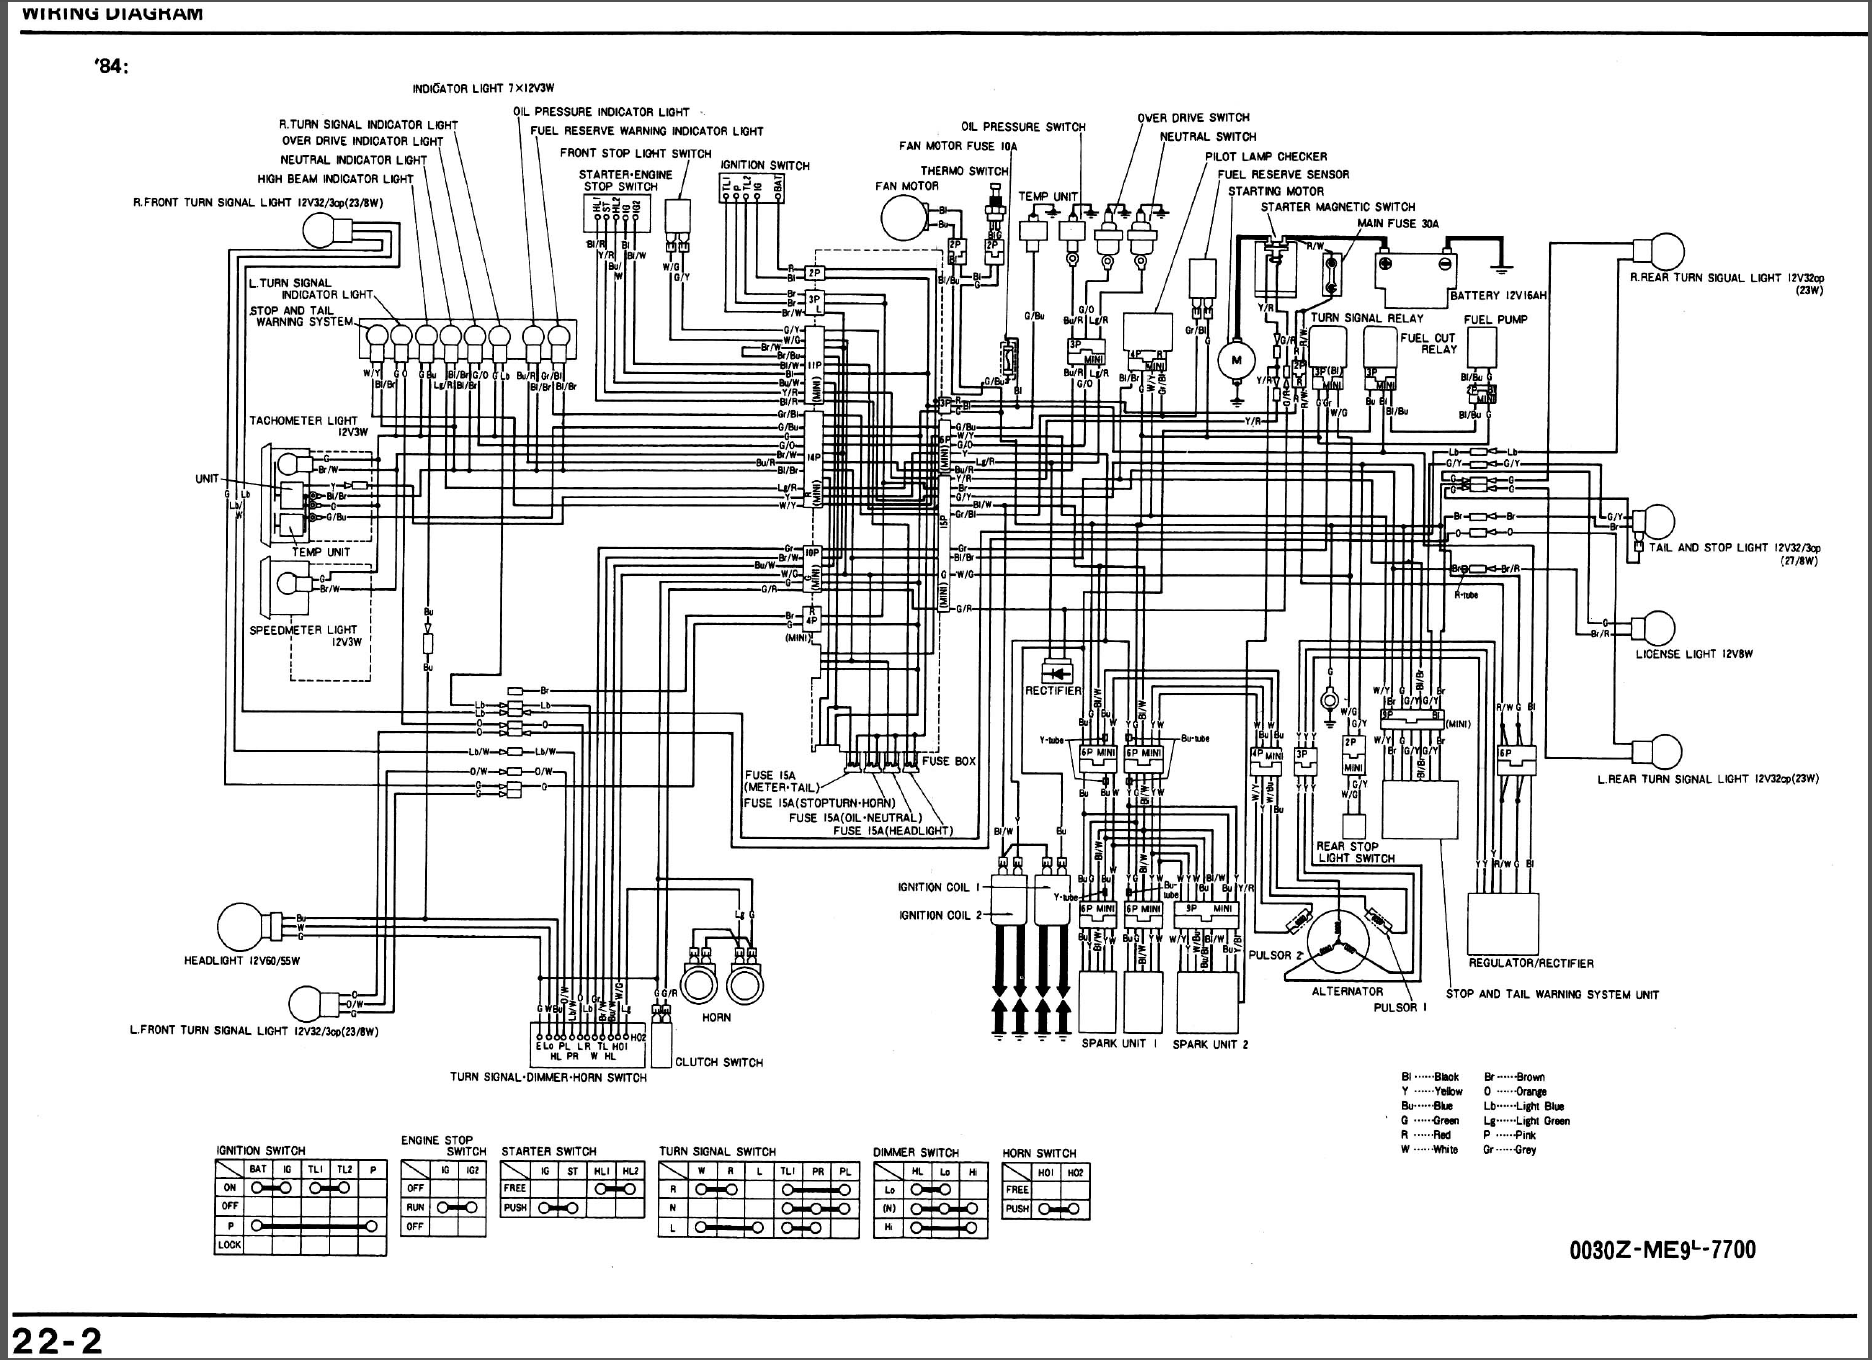 9265d1409799690 1984 honda shadow 700 wireing diagram b 1984 honda shadow 700 1984 honda vt700c wiring diagram at bayanpartner.co